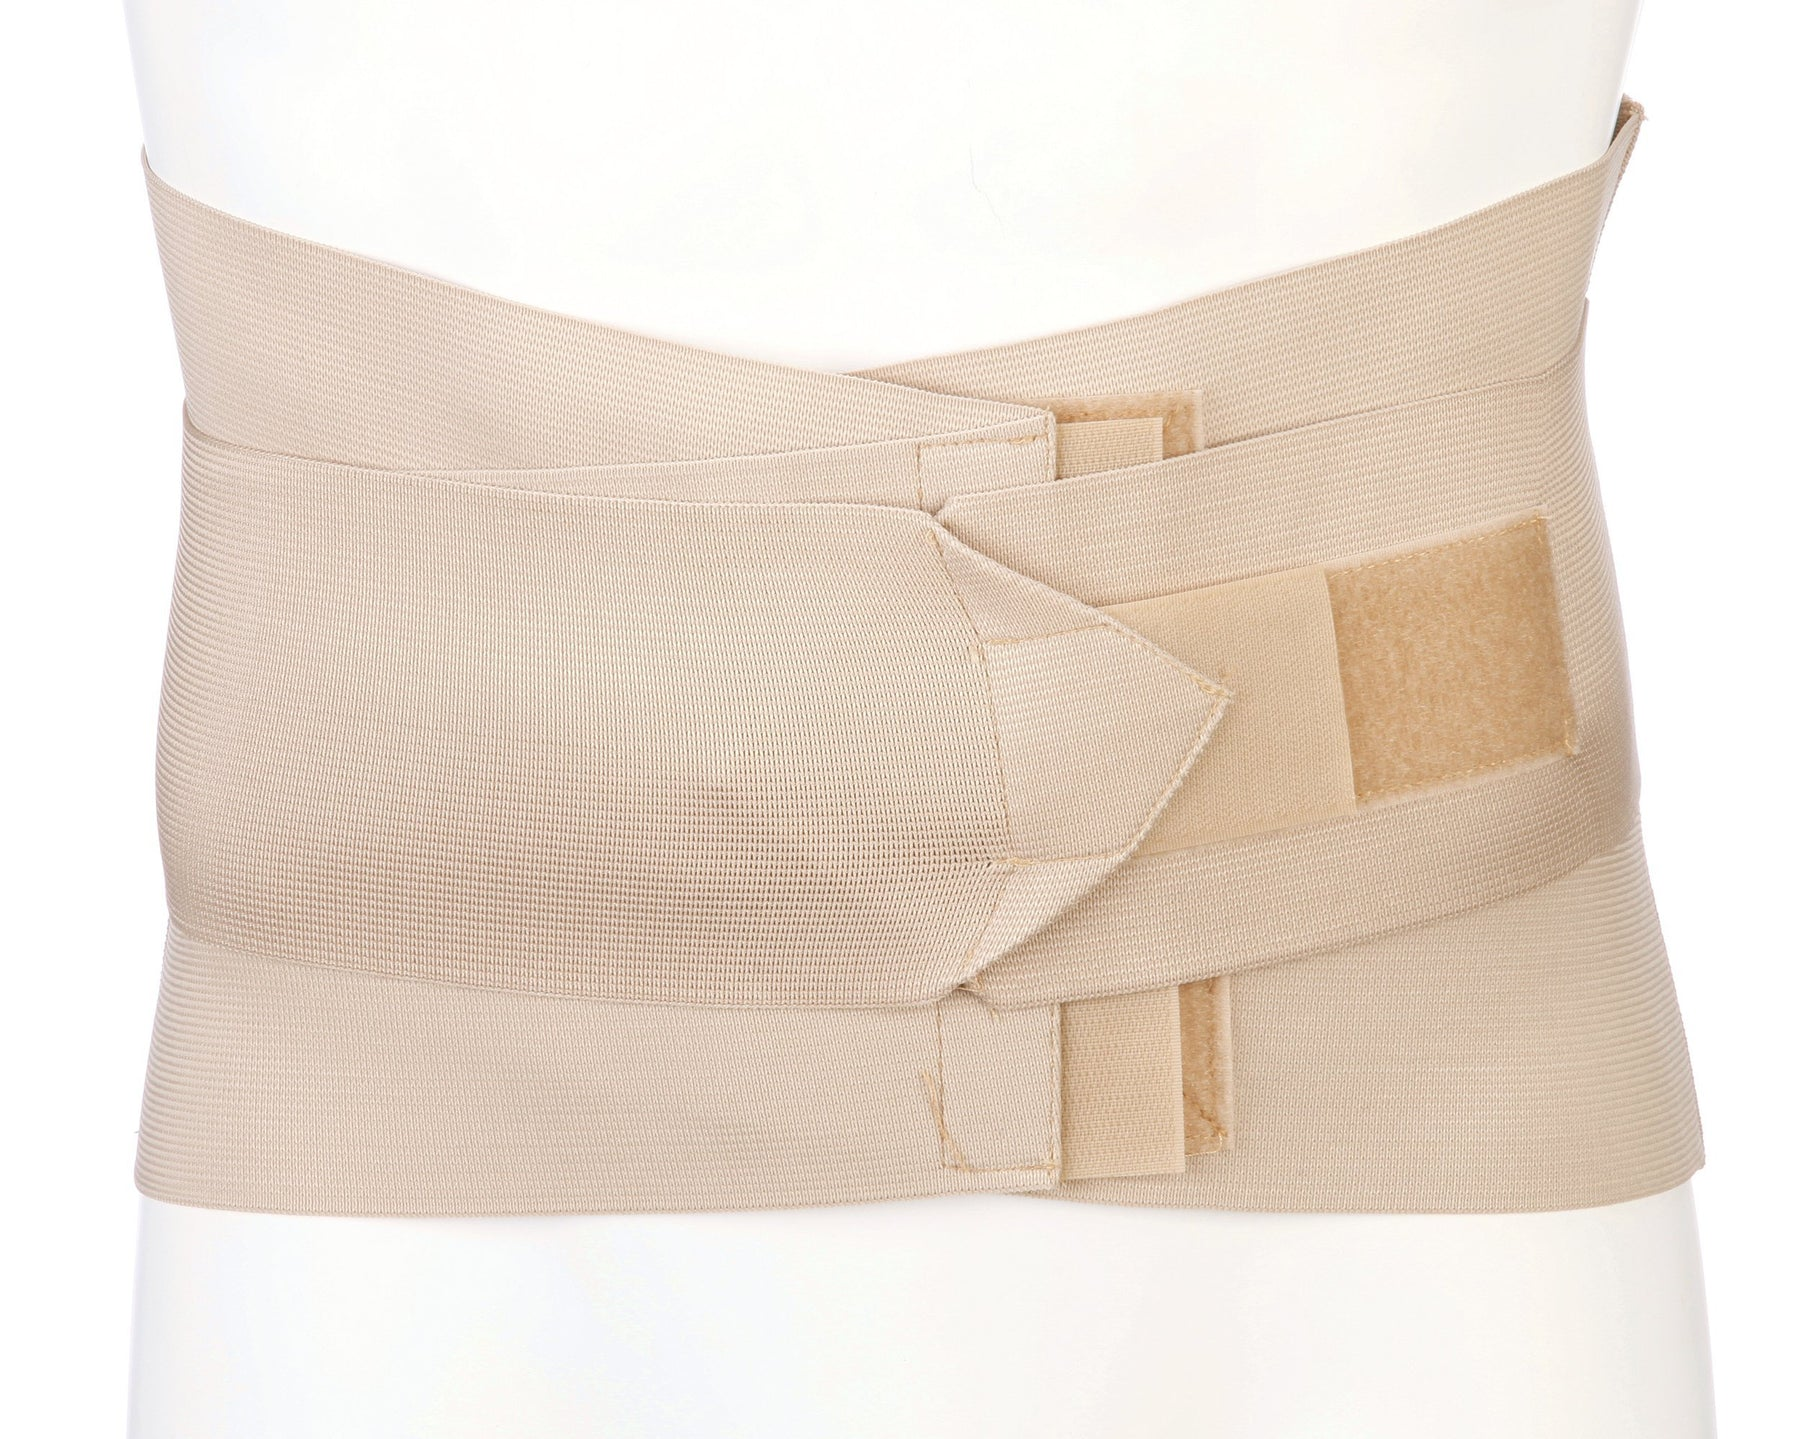 medi protect Lumbar Sacral Support